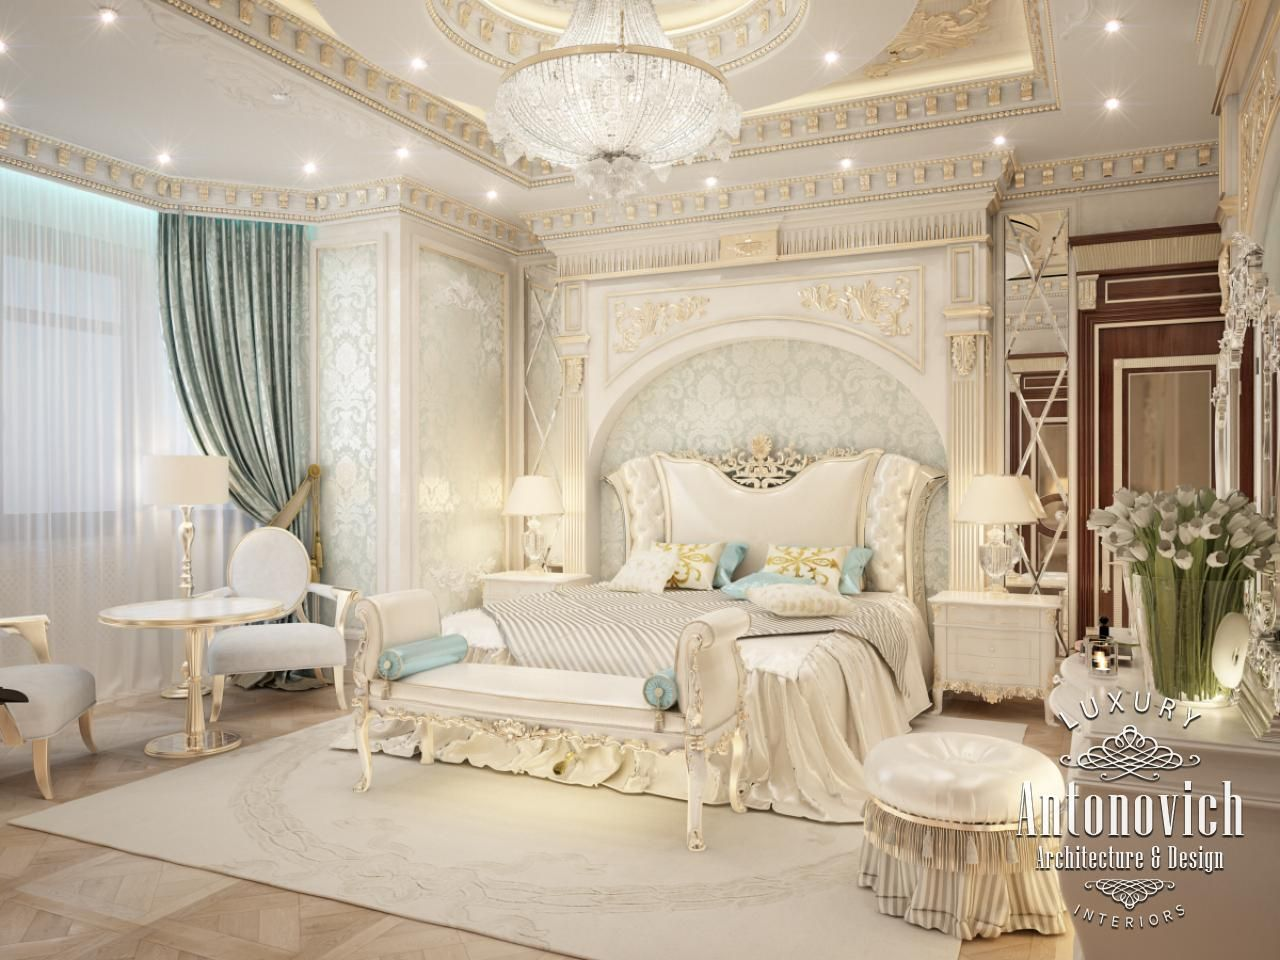 Bedroom Design In Dubai, Gorgeous Bedroom, Photo 1